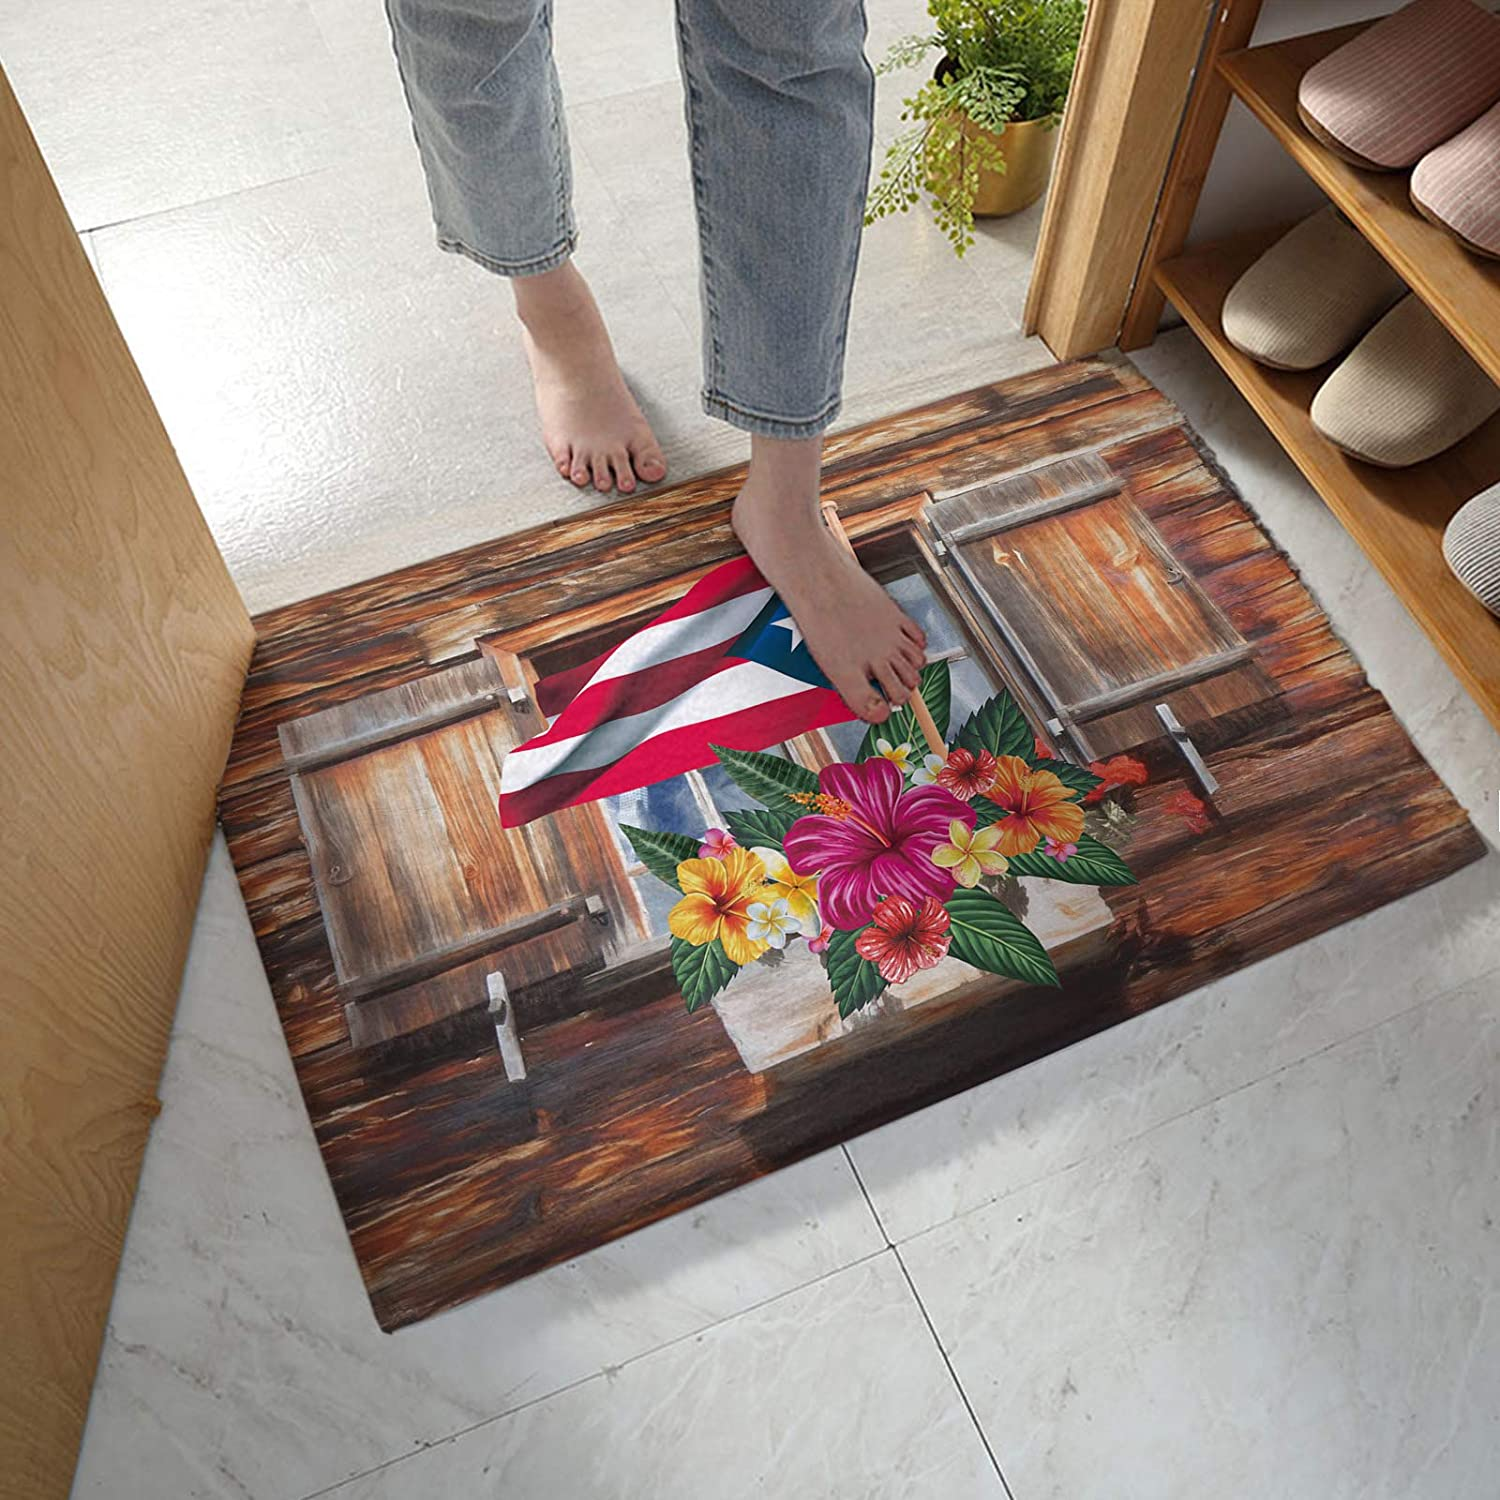 Max 89% OFF Fluffy Plush New York Mall Mat Absorbent Doormat Flag Puerto Rico for Entrance